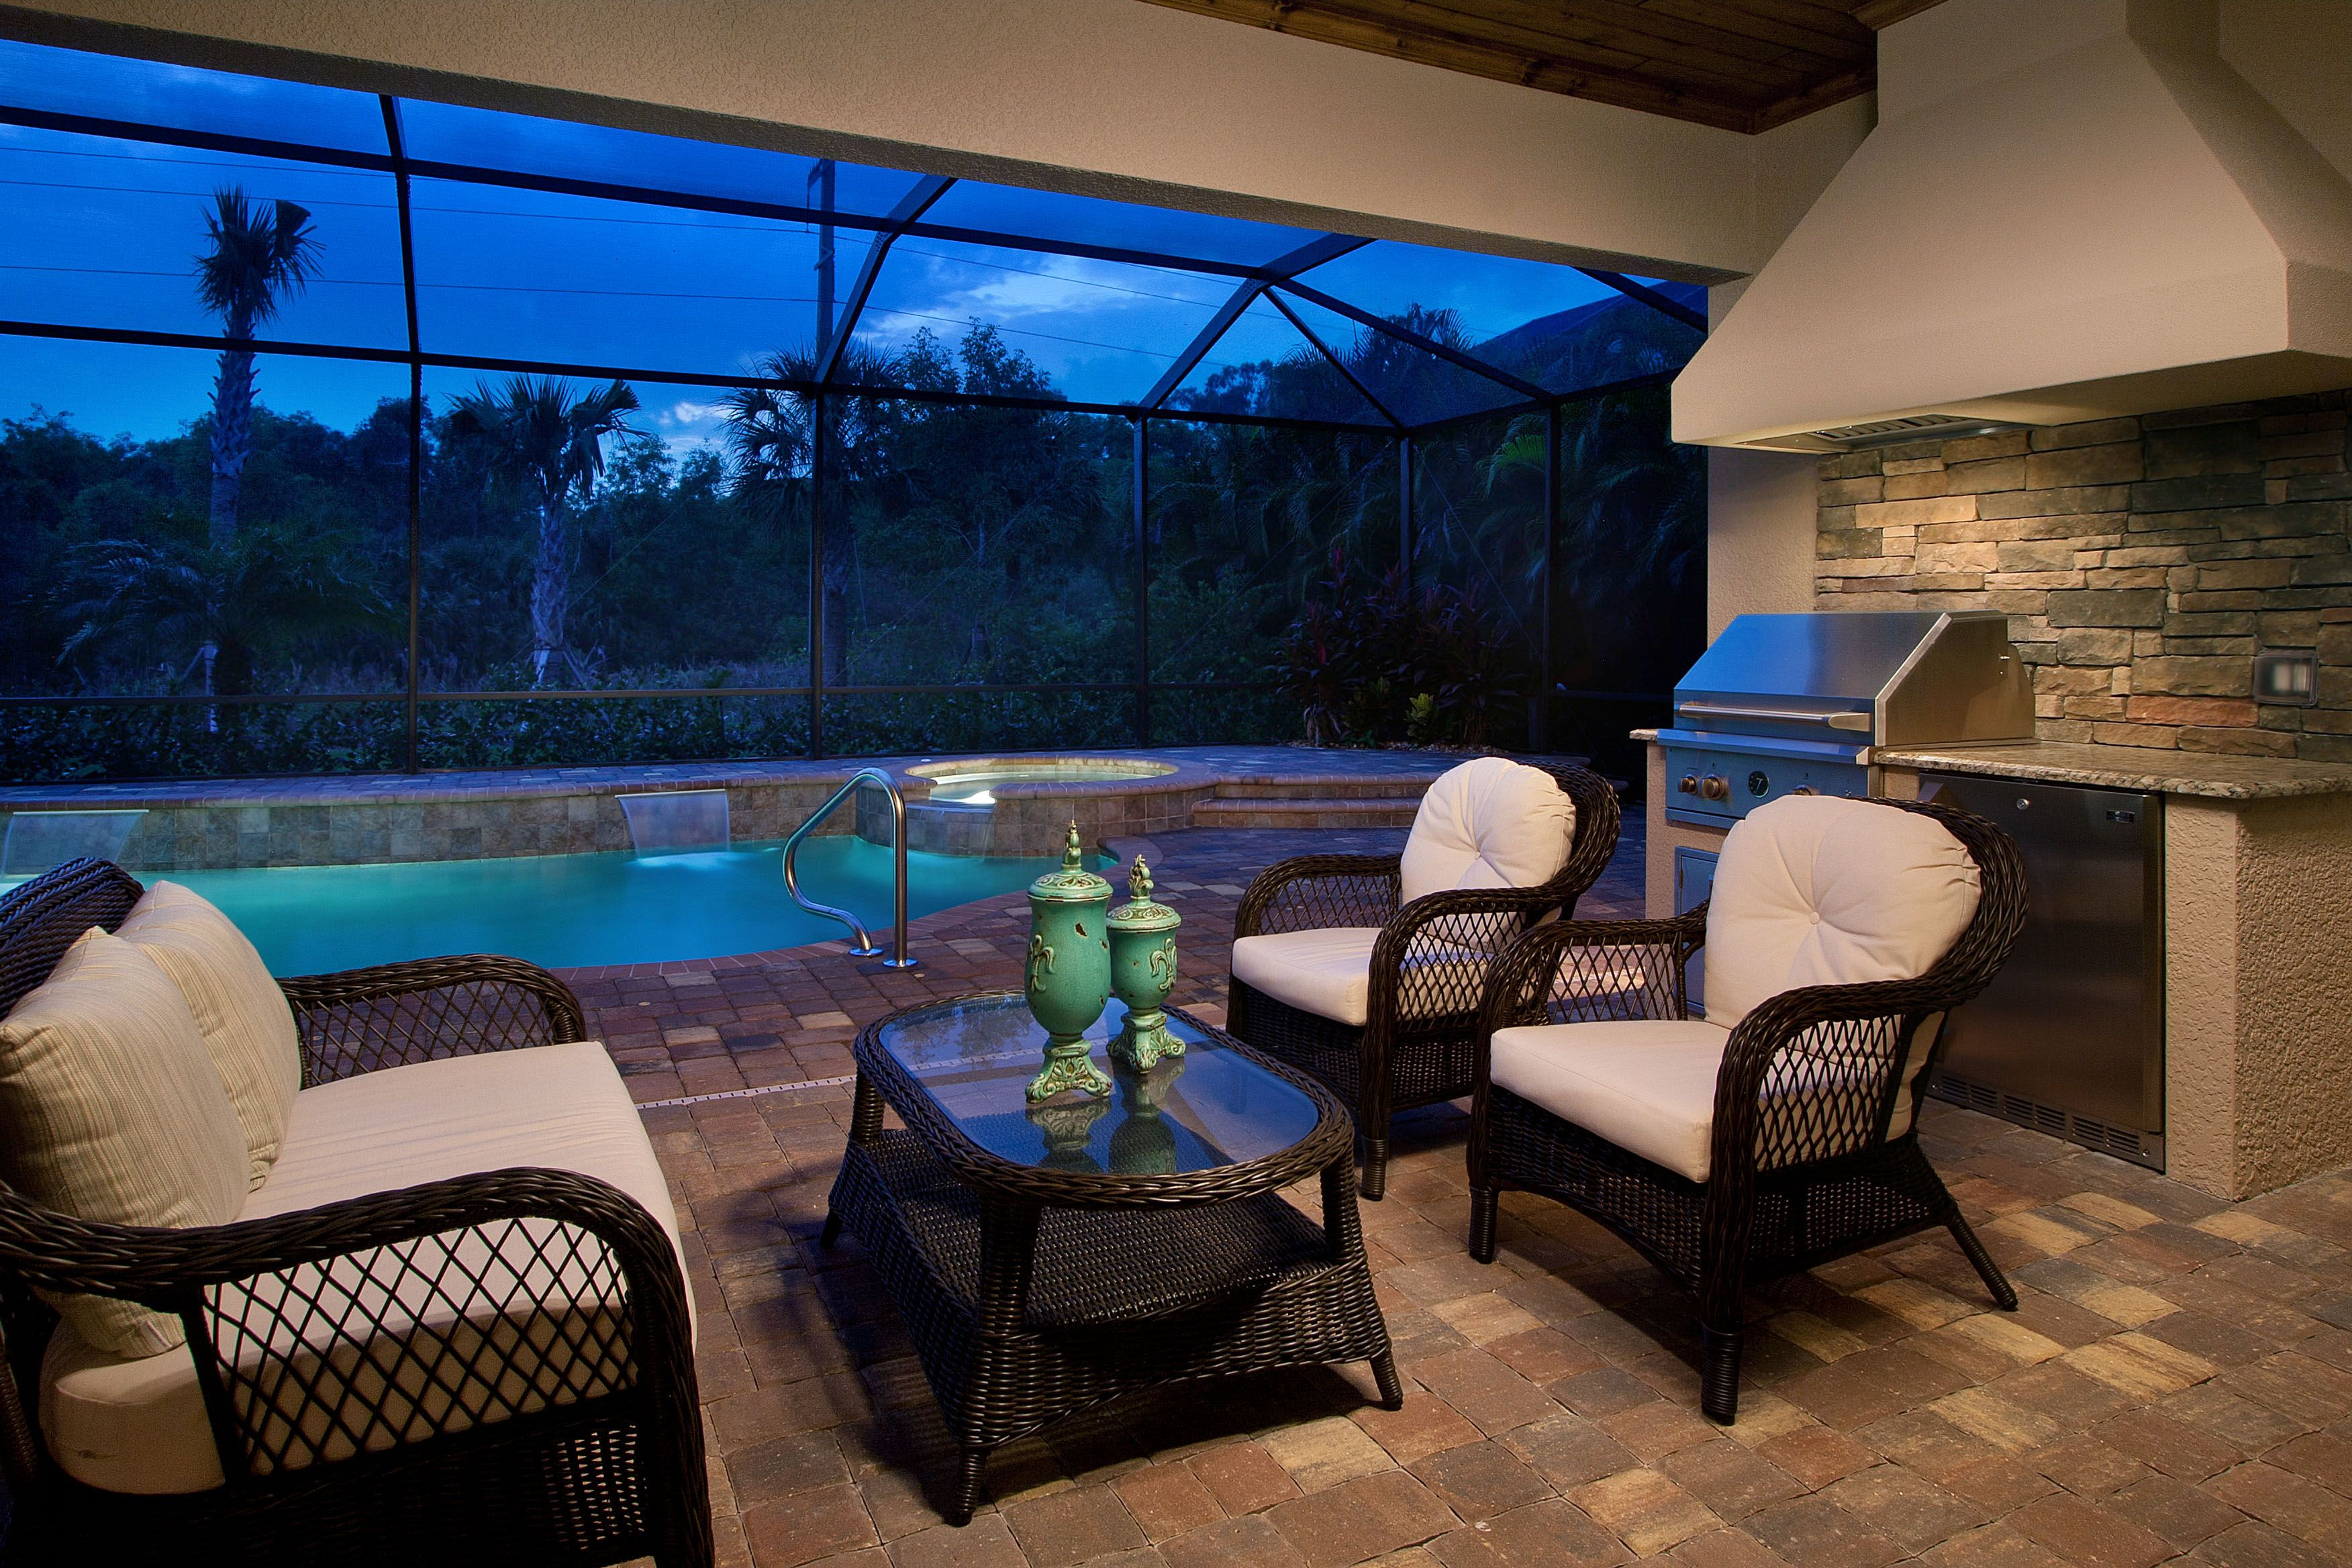 How Often Would You Use This Outdoor Kitchen New Home Communities New House Plans Estate Homes